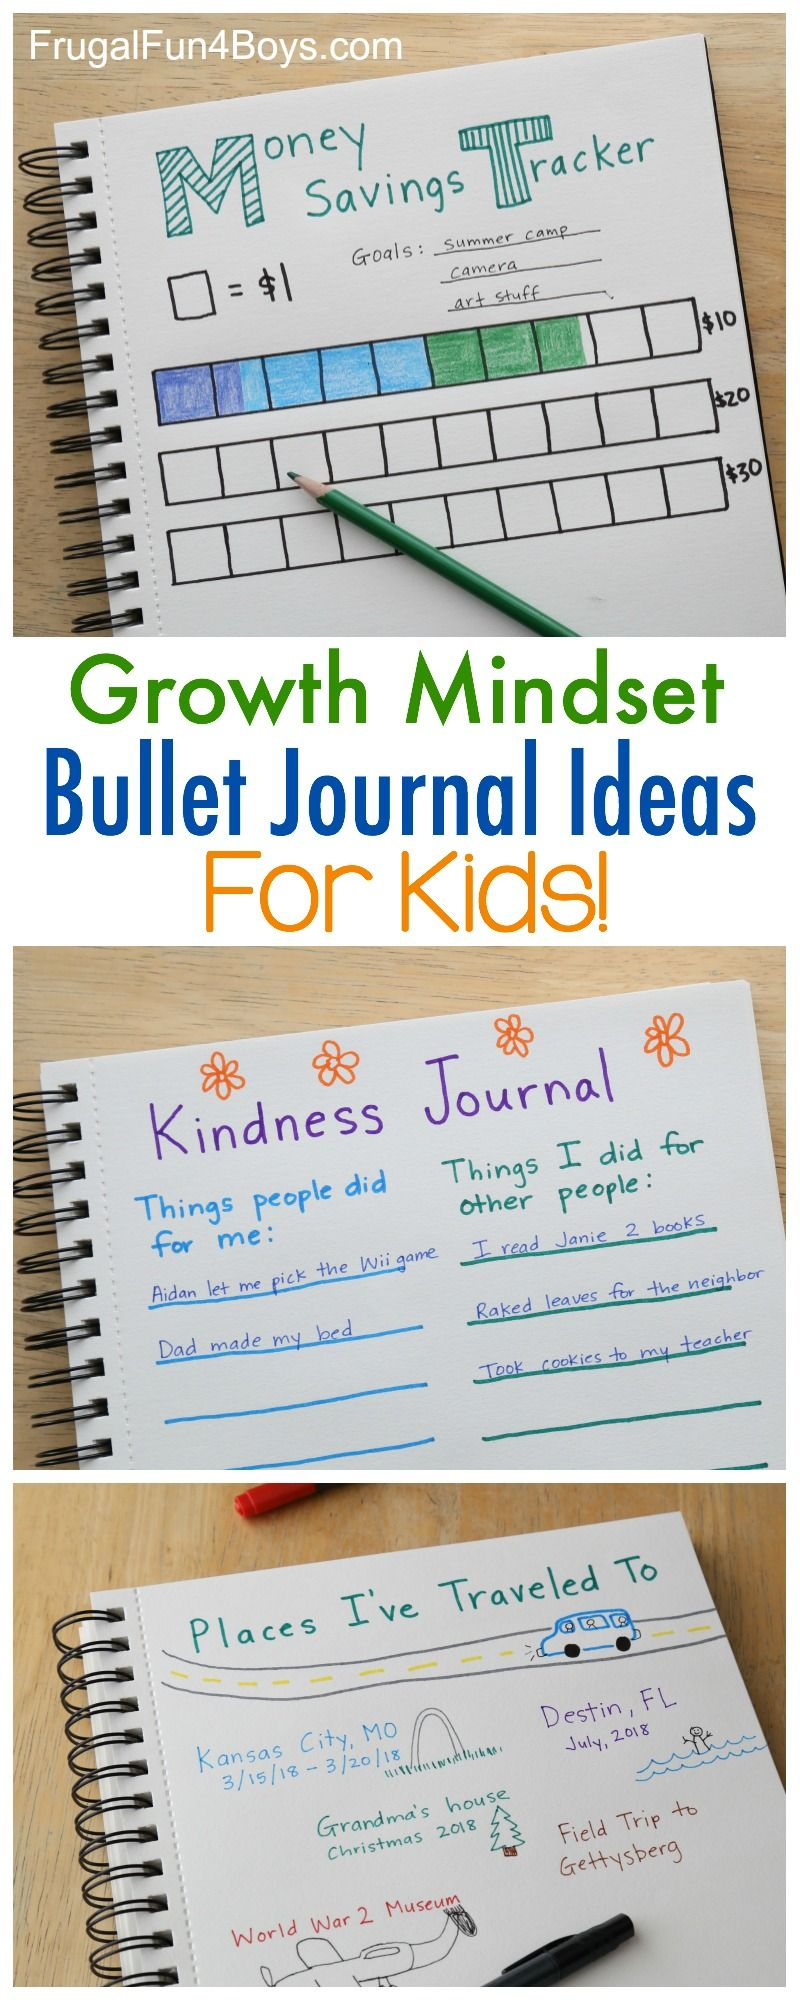 Growth Mindset Bullet Journal Ideas for Kids - Set goals, record progress,  journal new experiences, and more!